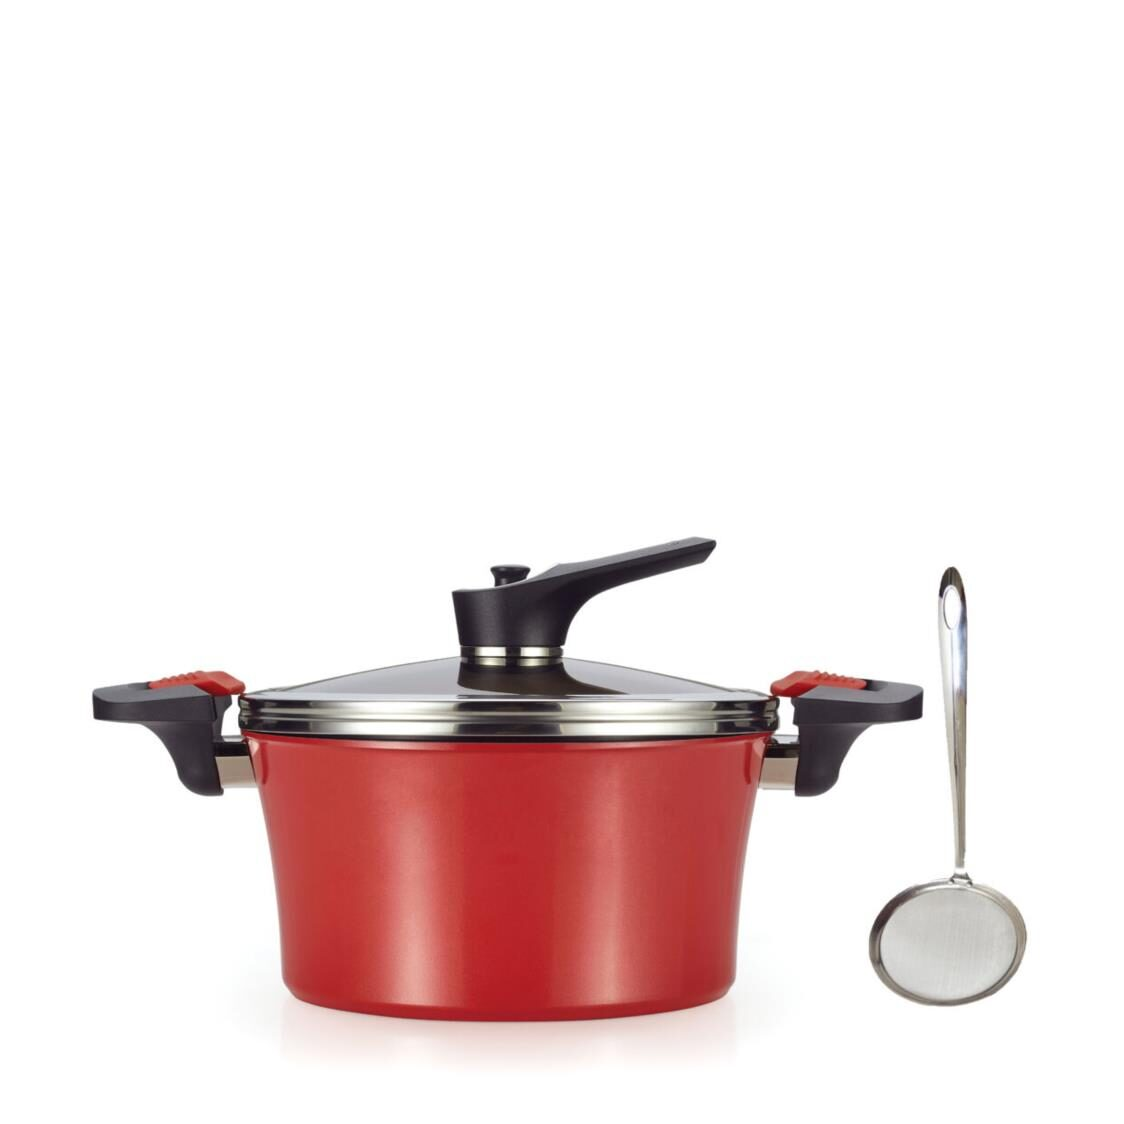 Happycall Red Addiction IH Vacuum 24cm46L High Stock Pot Made in Korea 3003-1126 Free Endo Oil Separator Worth 1990